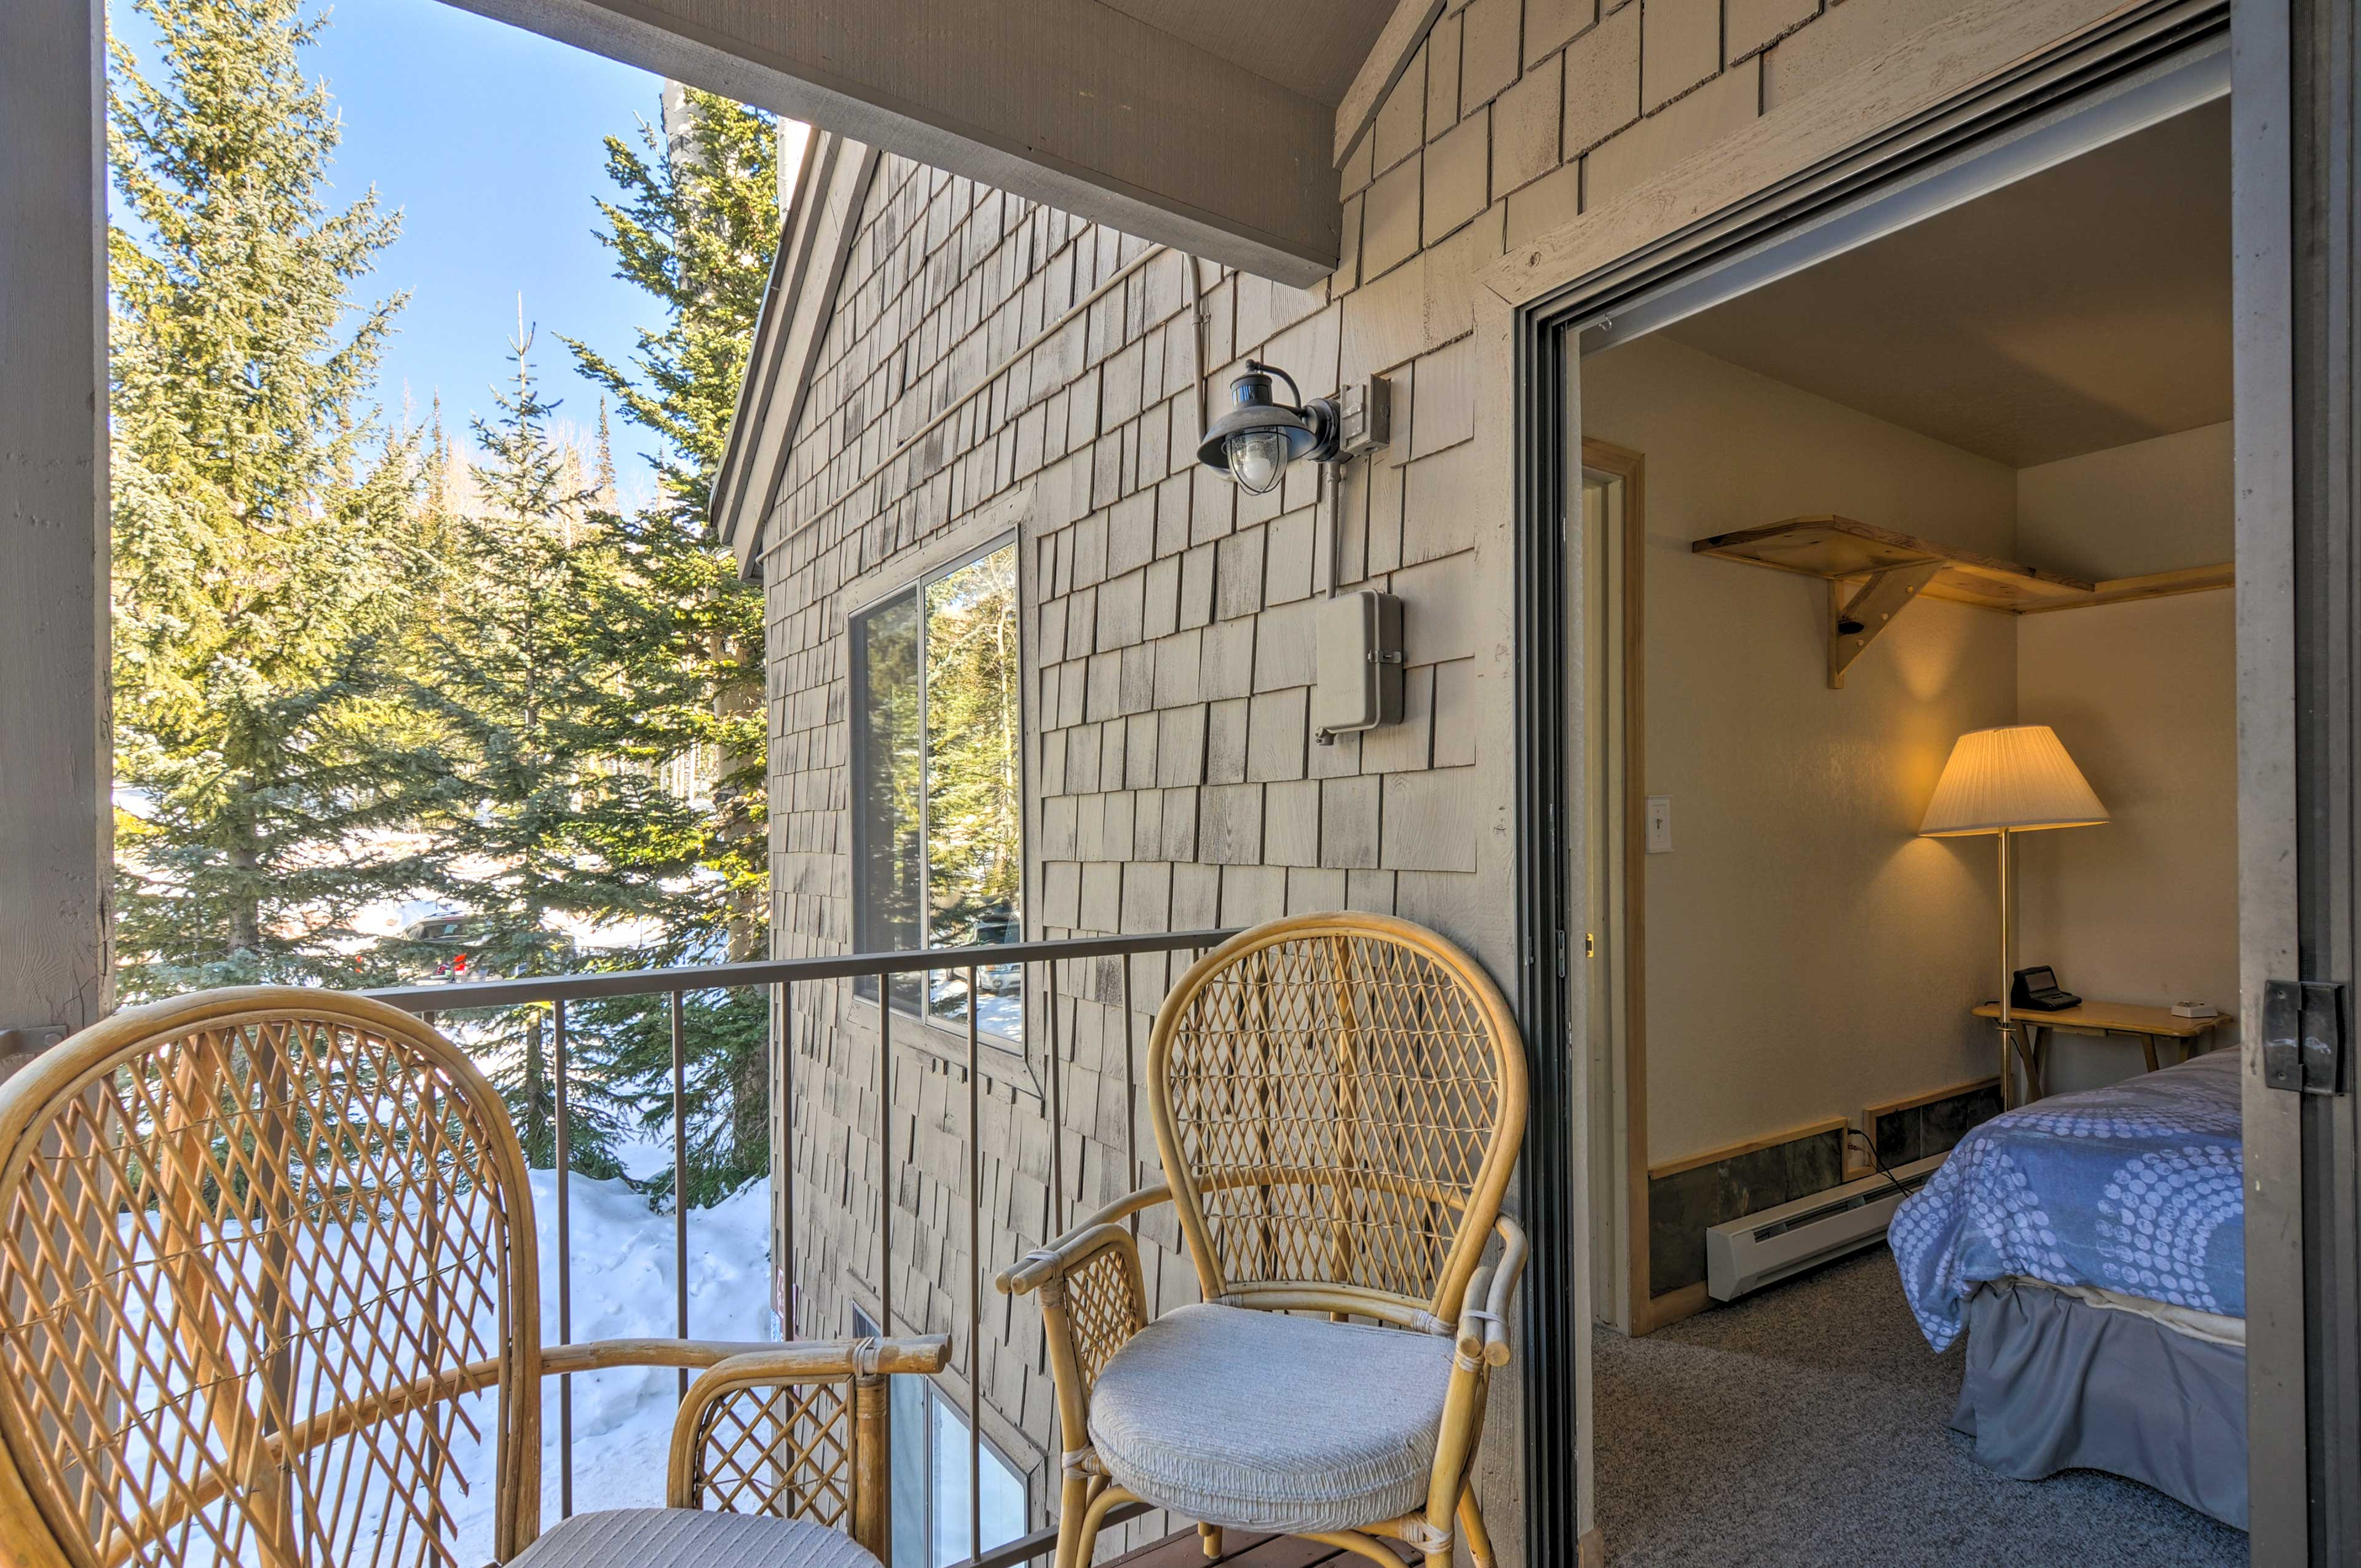 Step out of the sliding glass door to breathe in the fresh mountain air!